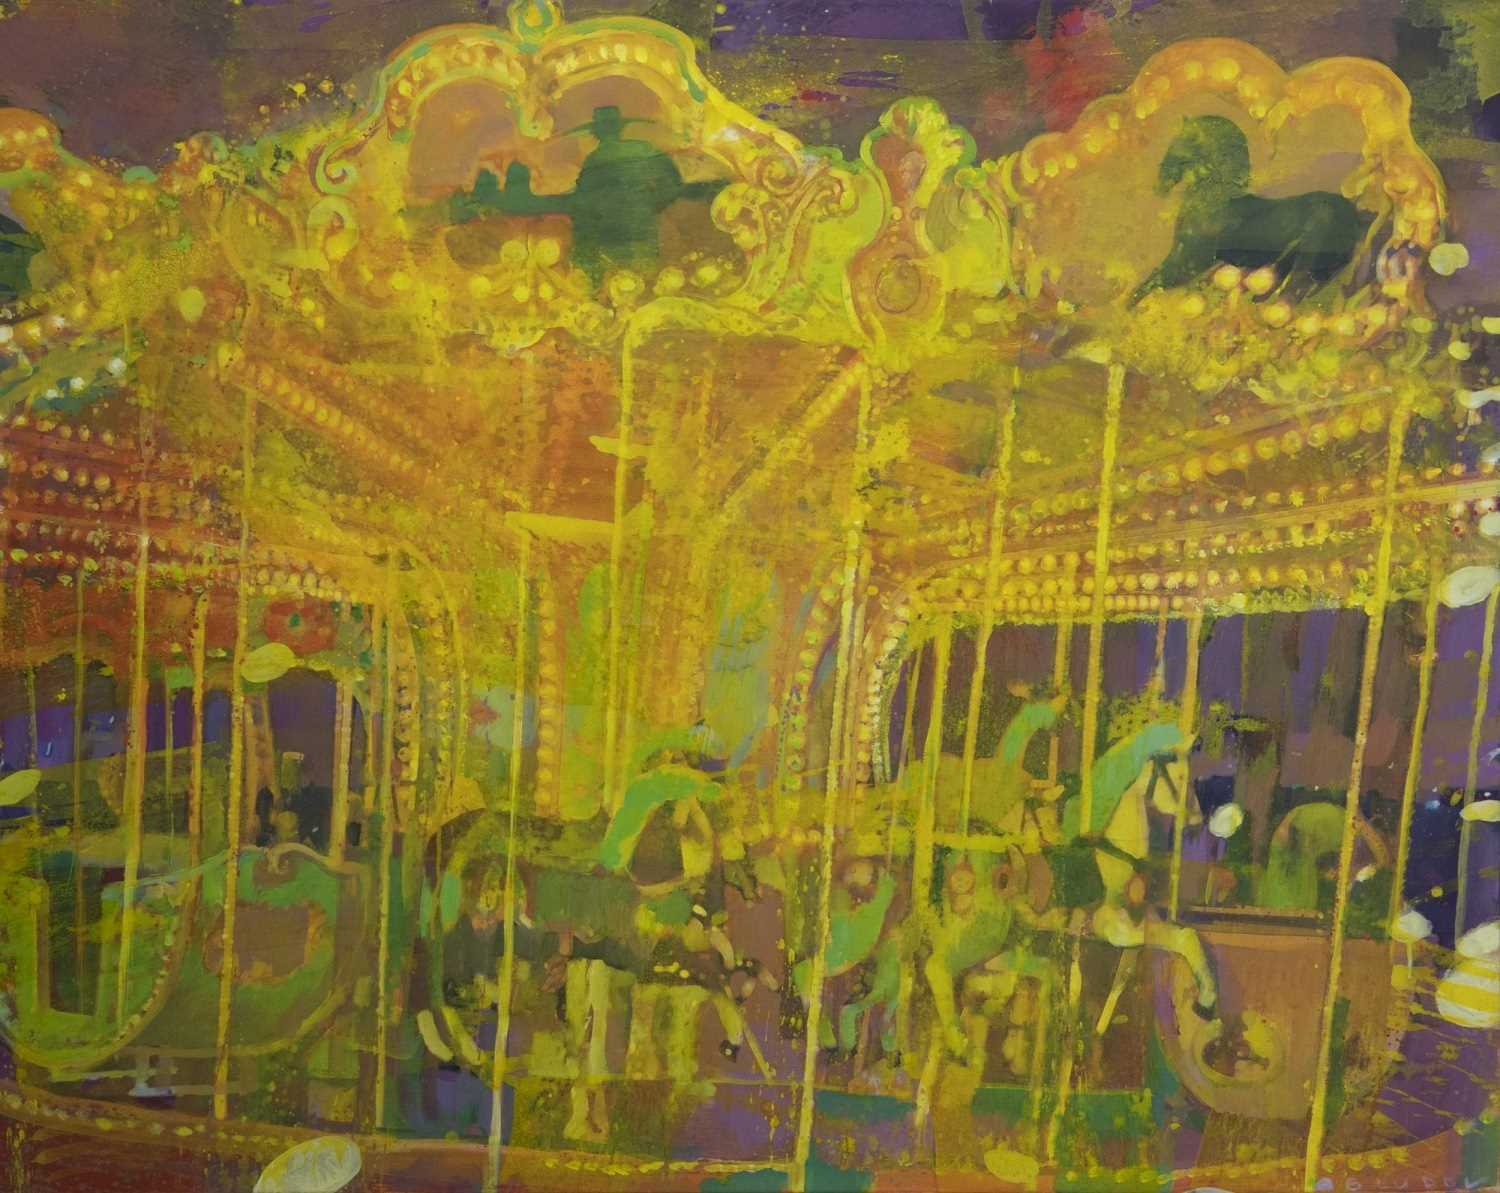 Lot 562 - CAROUSEL, AN ACRYLIC BY ANDREI BLUDOV